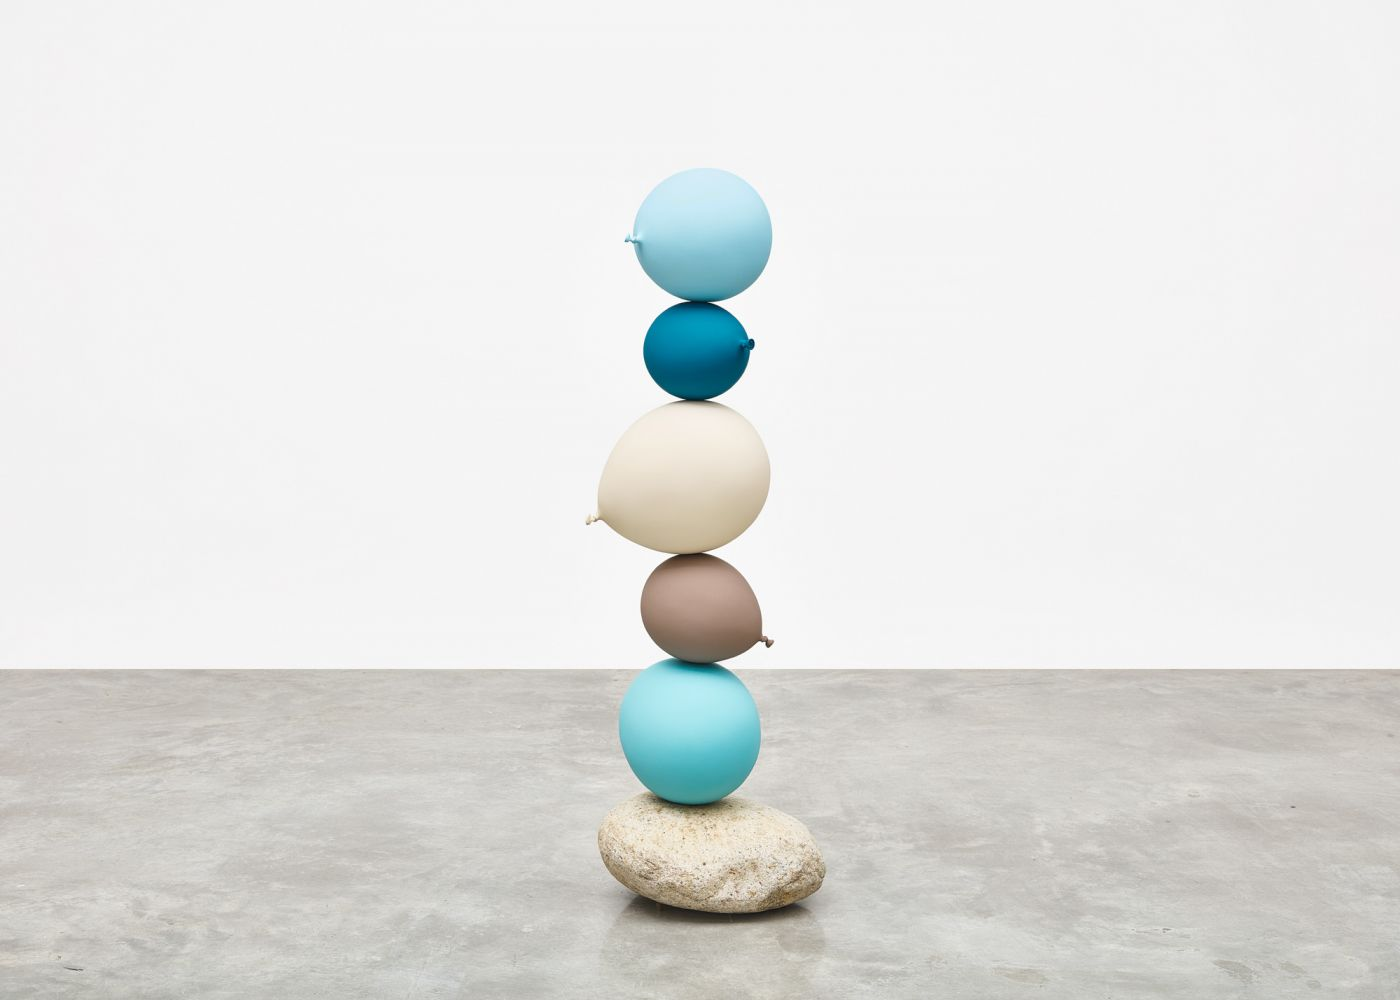 Gimhongsok (b. 1964) Untitled (Short People) , Light Blue, Blue, Beige, Grey, Light Blue, 2018 Cast bronze, stone 50.79 x 16.54 x 17.32 inches 129 x 42 x 44 cm